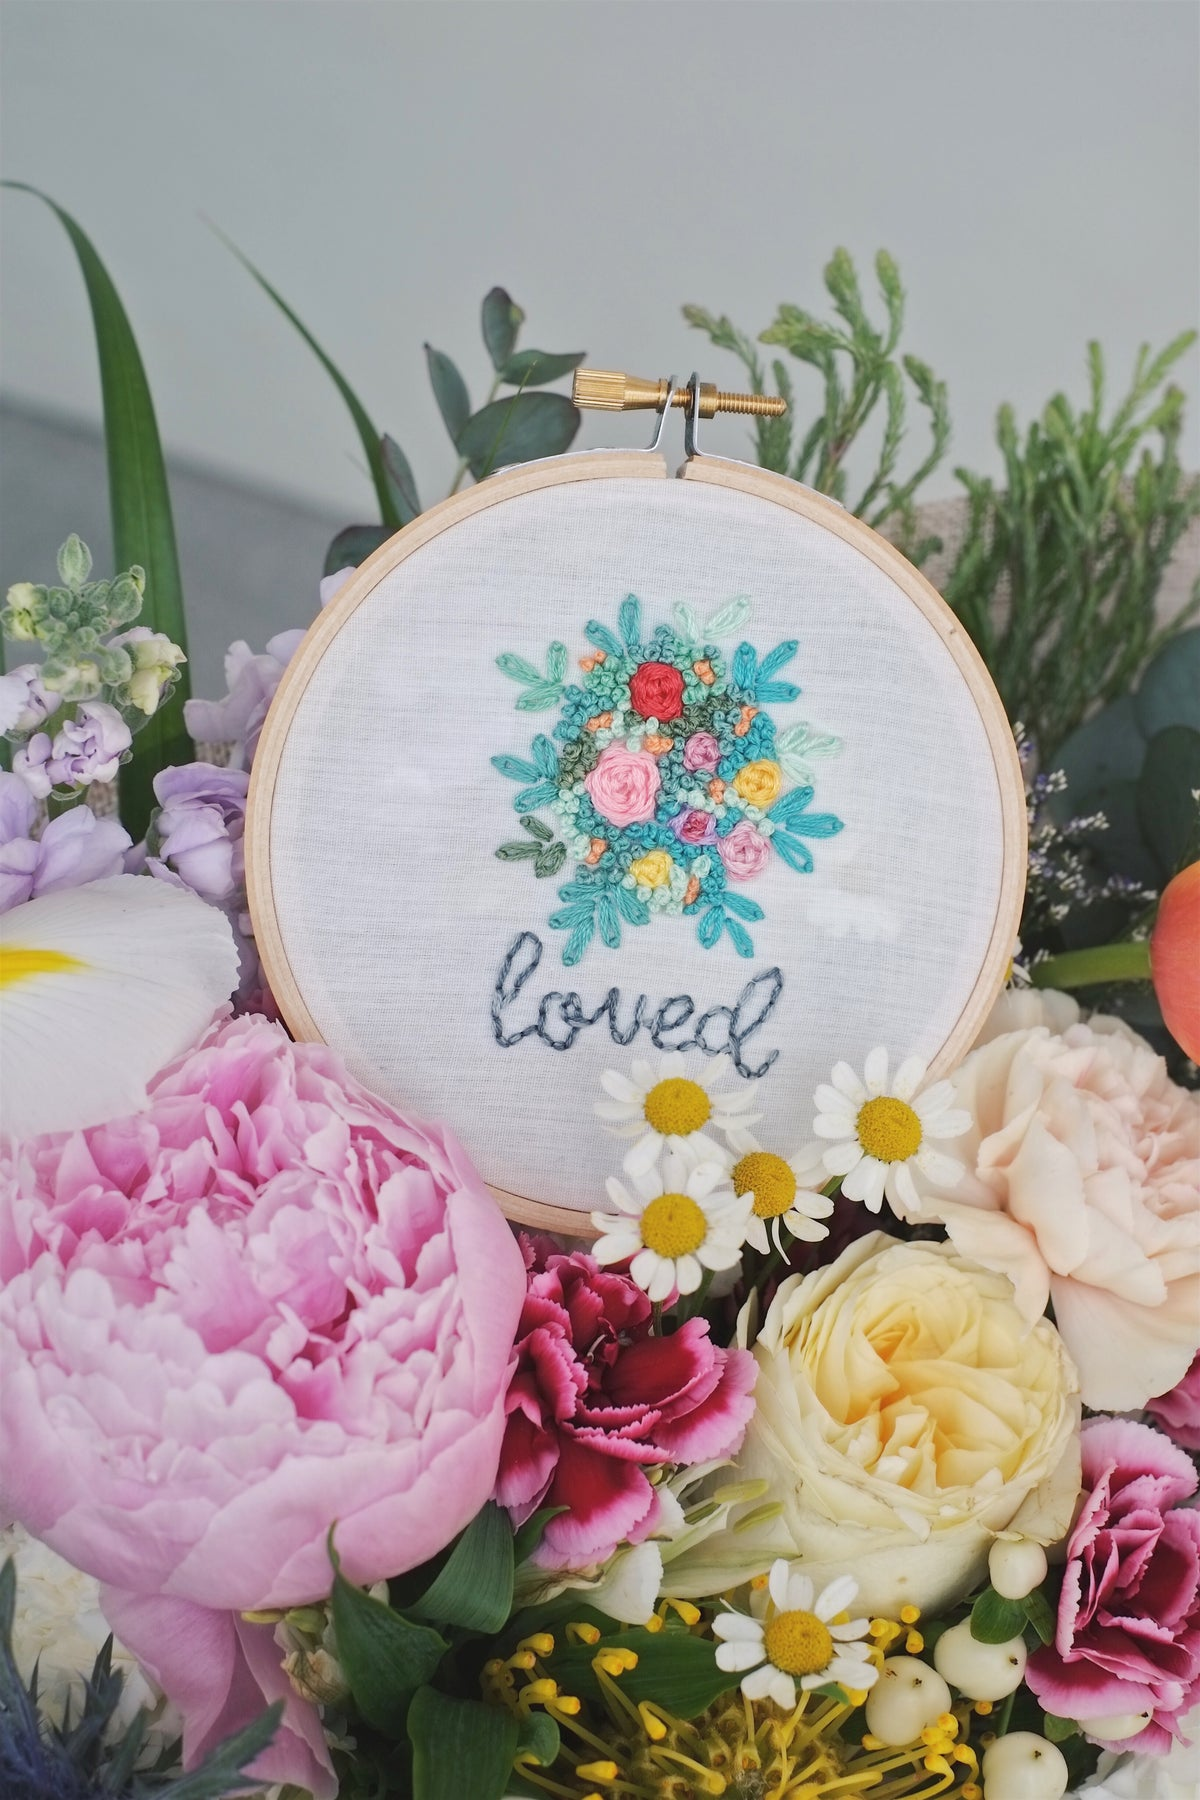 Embroidery hoops by allycraftsco - hello flowers!